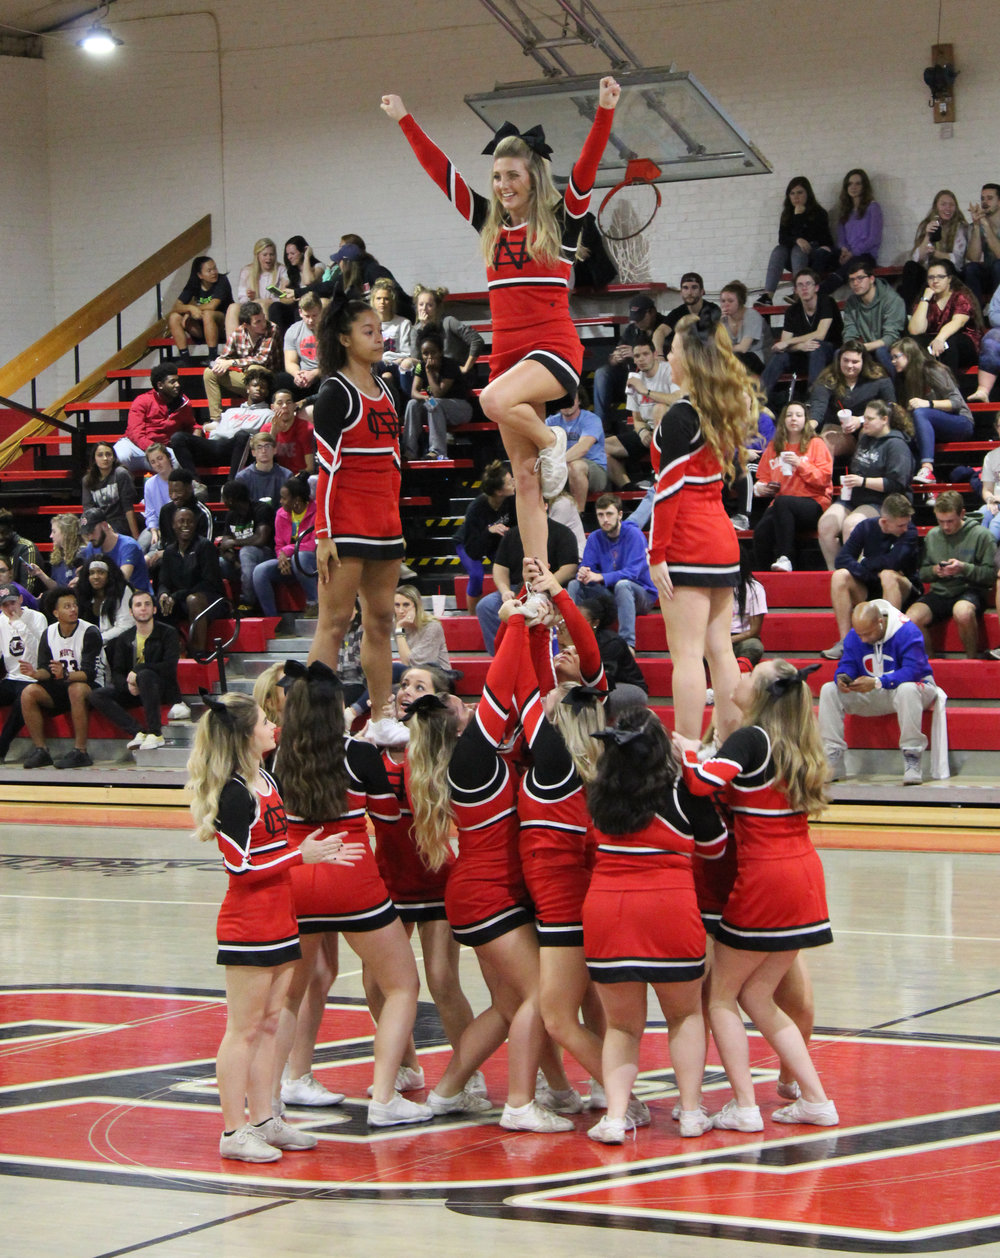 The North Greenville cheerleaders accomplish a stunt during one of the timeouts.